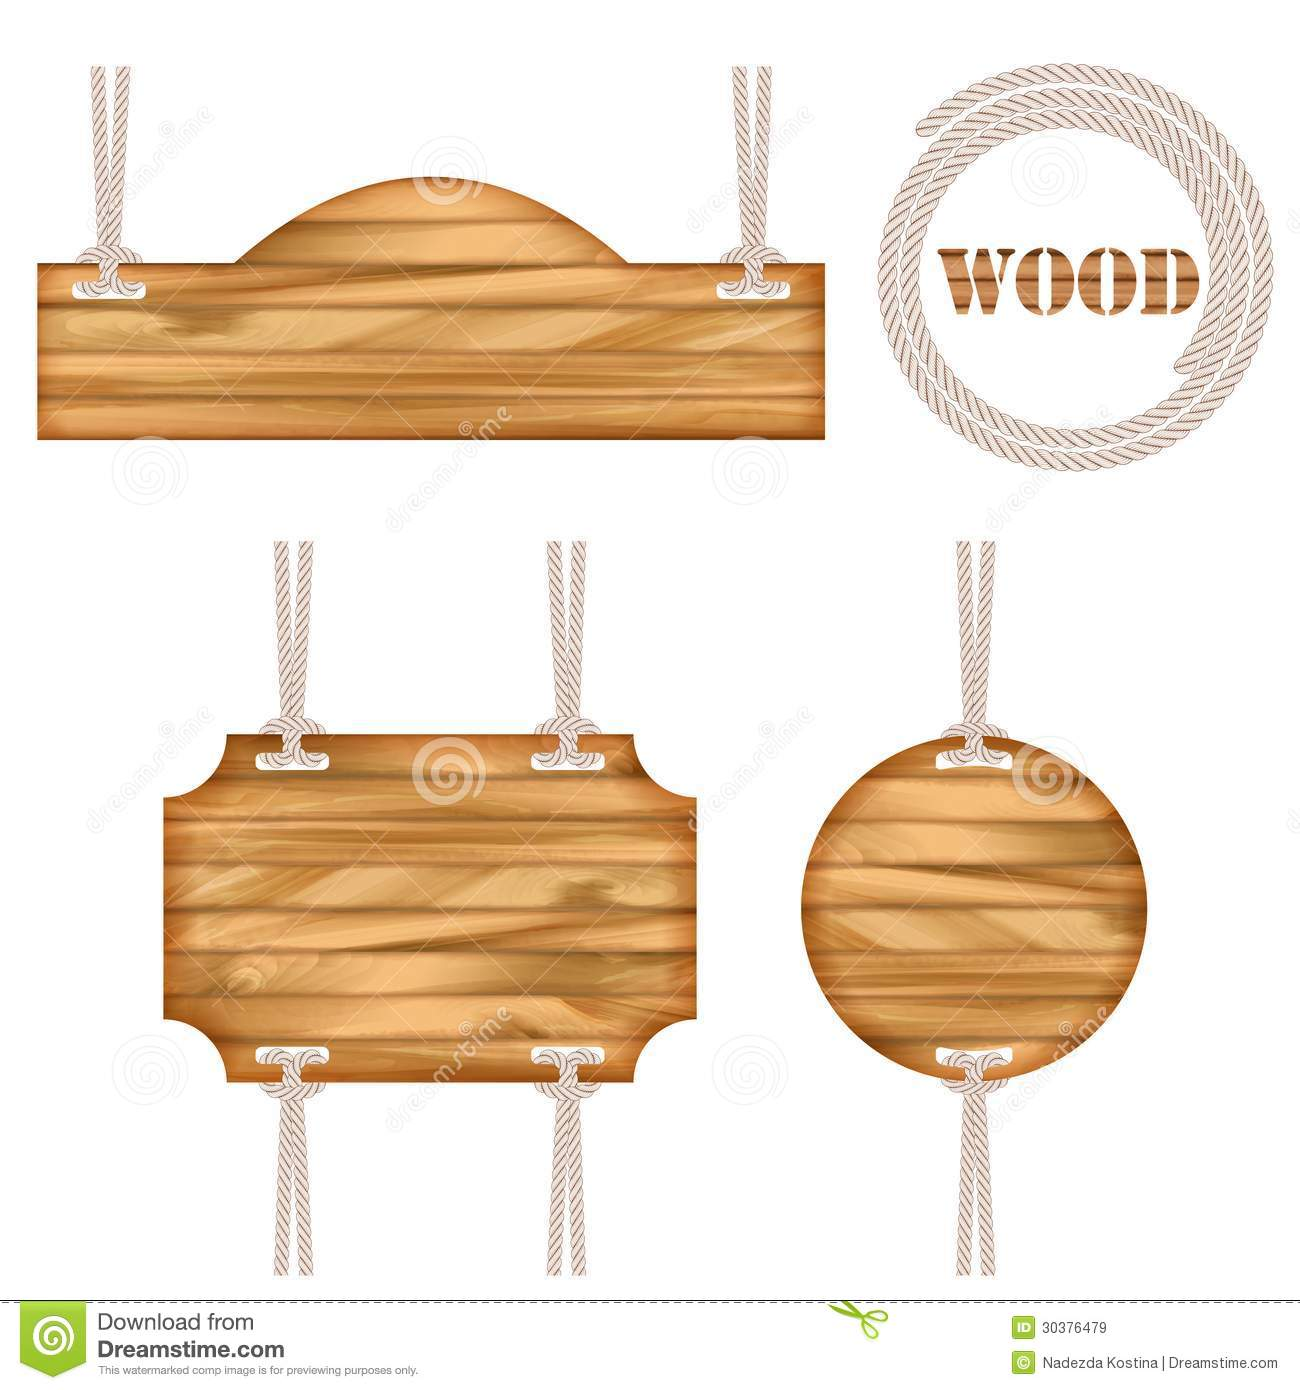 Wood vector frame rope design royalty free stock images for Rope designs and more